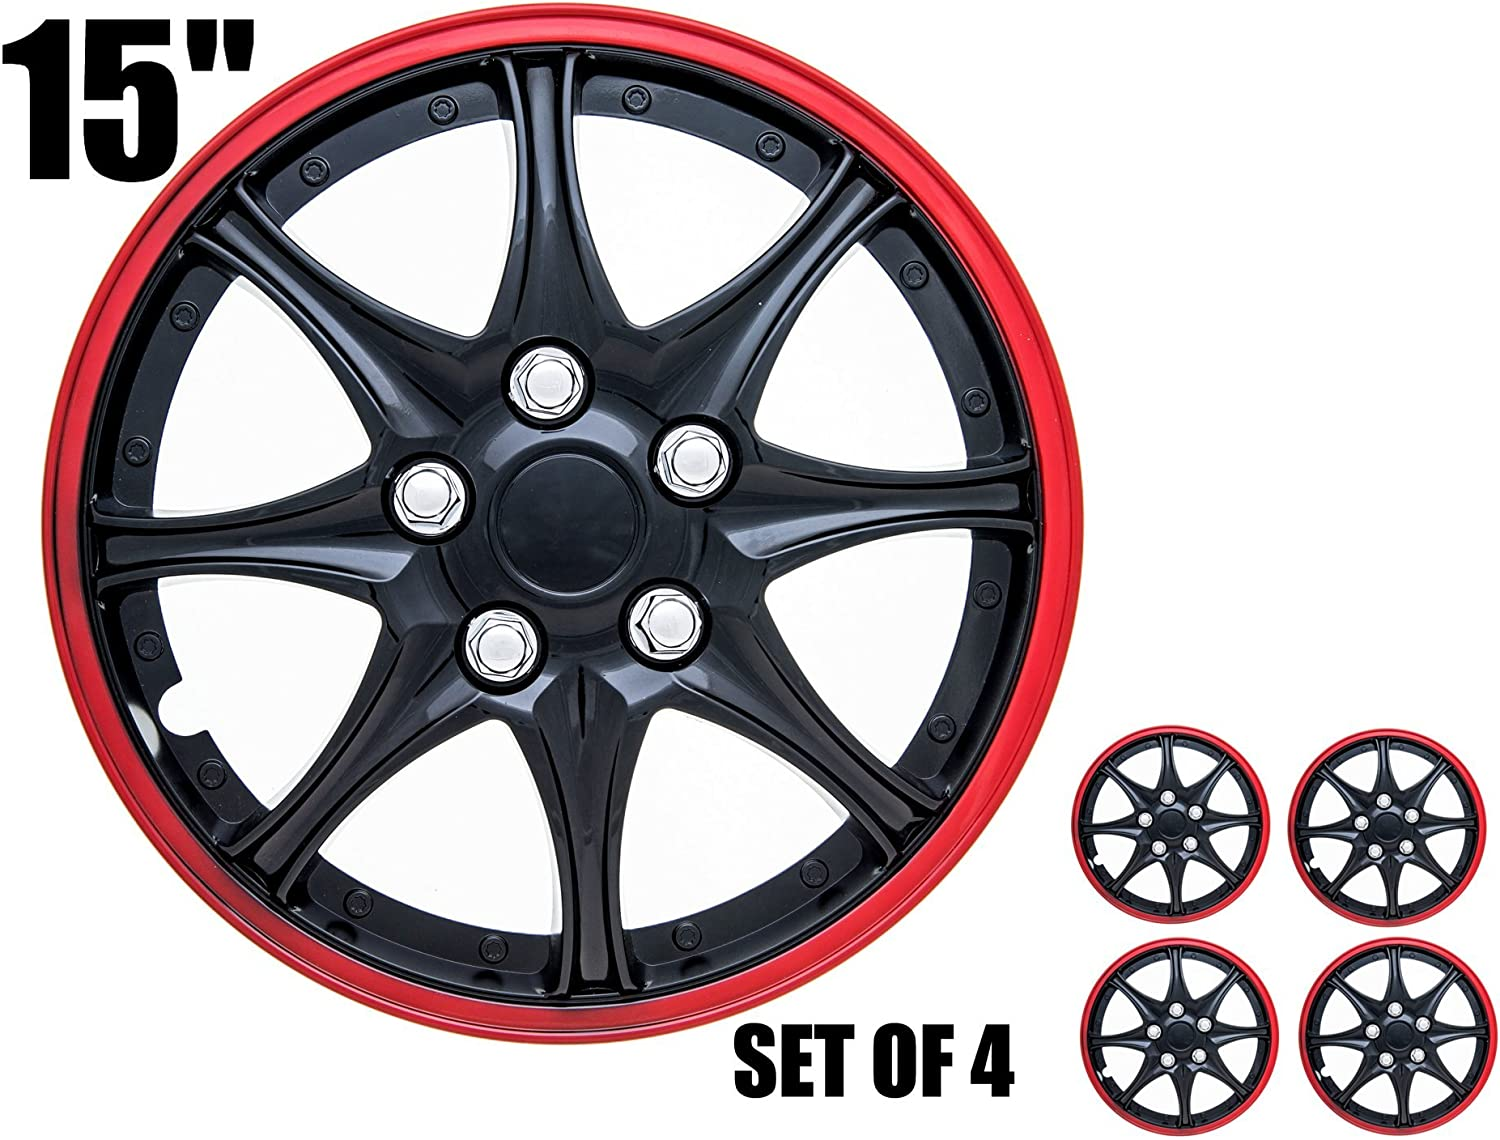 Pack of 4 SPA Hubcaps for Standard Steel Wheels Wheel Covers Fits 14 Inch Wheel, Blue /& Black Snap On